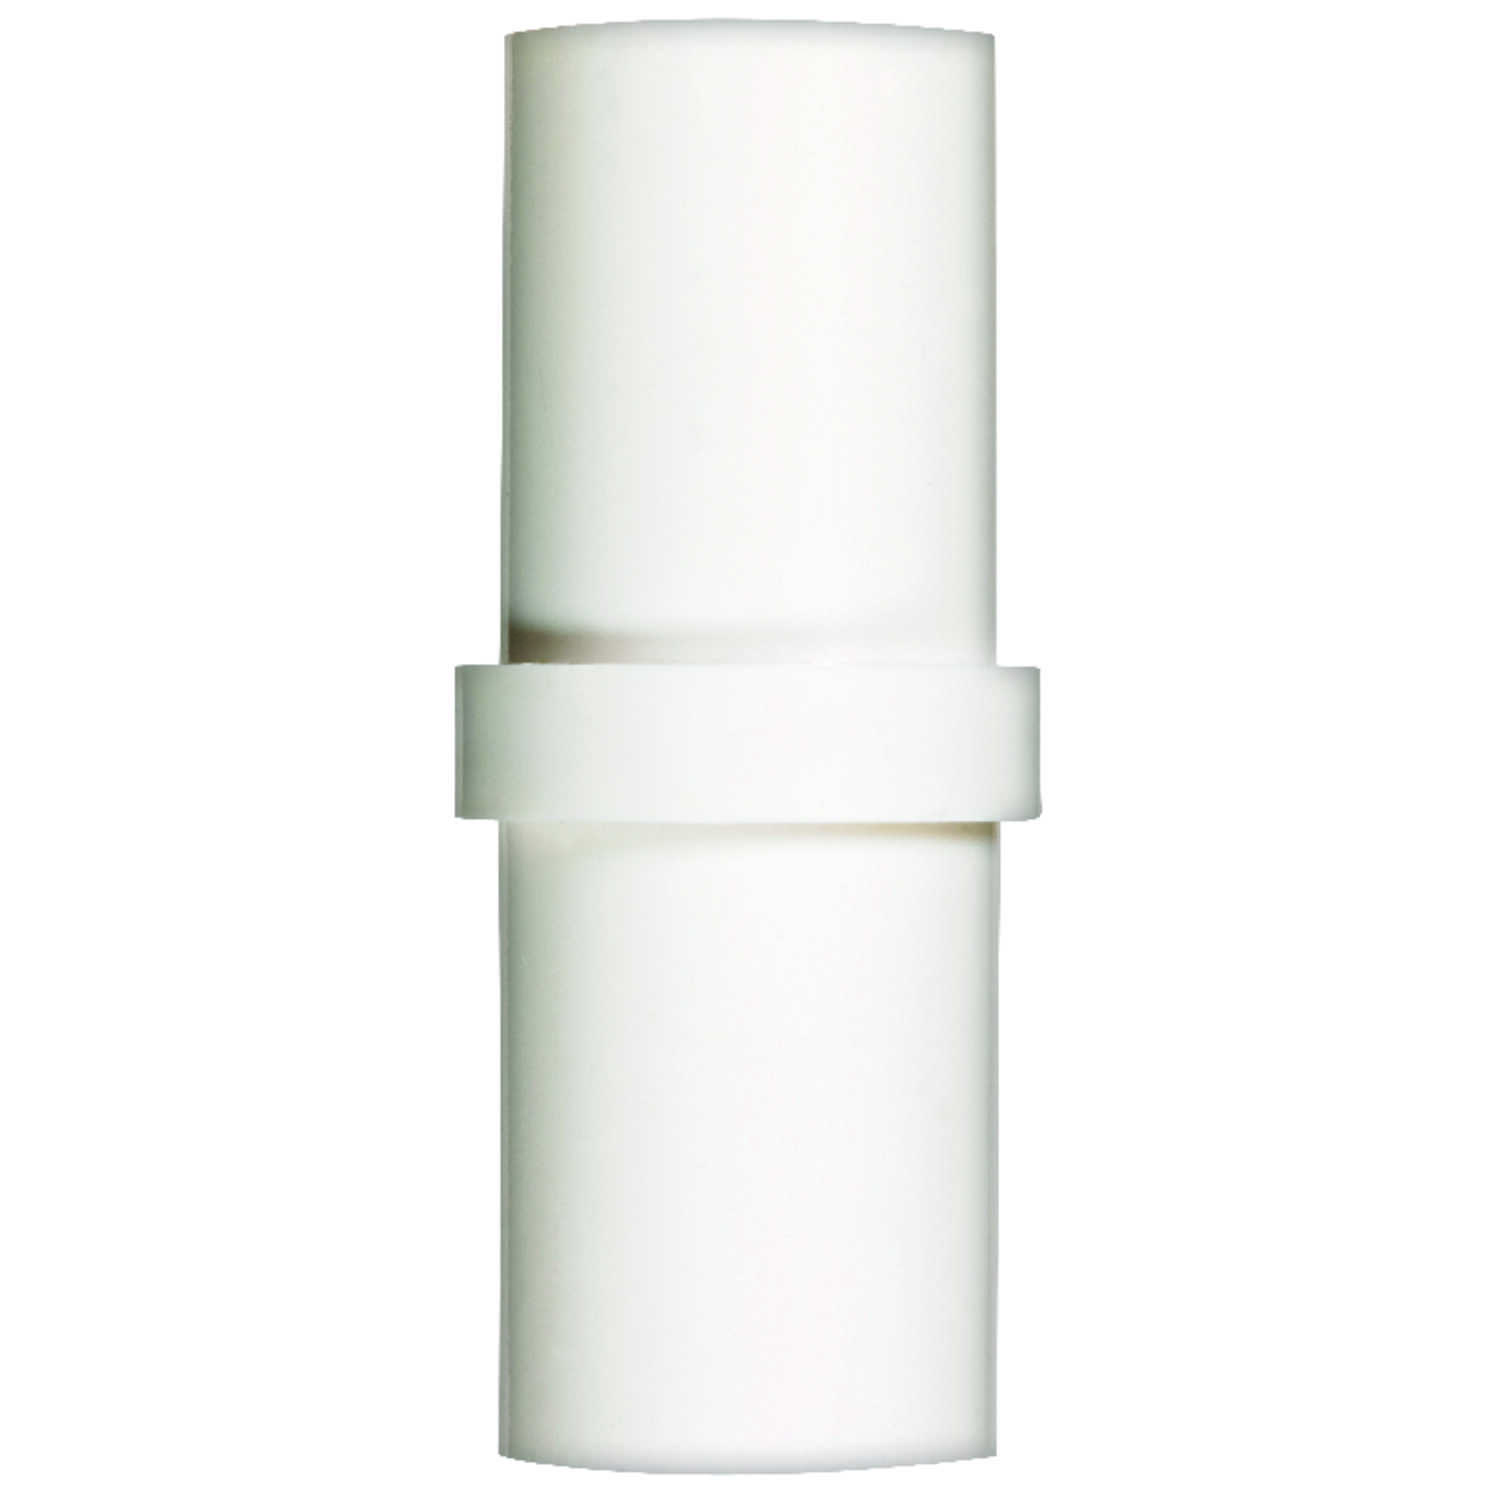 Campbell  PVC  Slip Coupling  1-1/2 in.  x 5 in. L